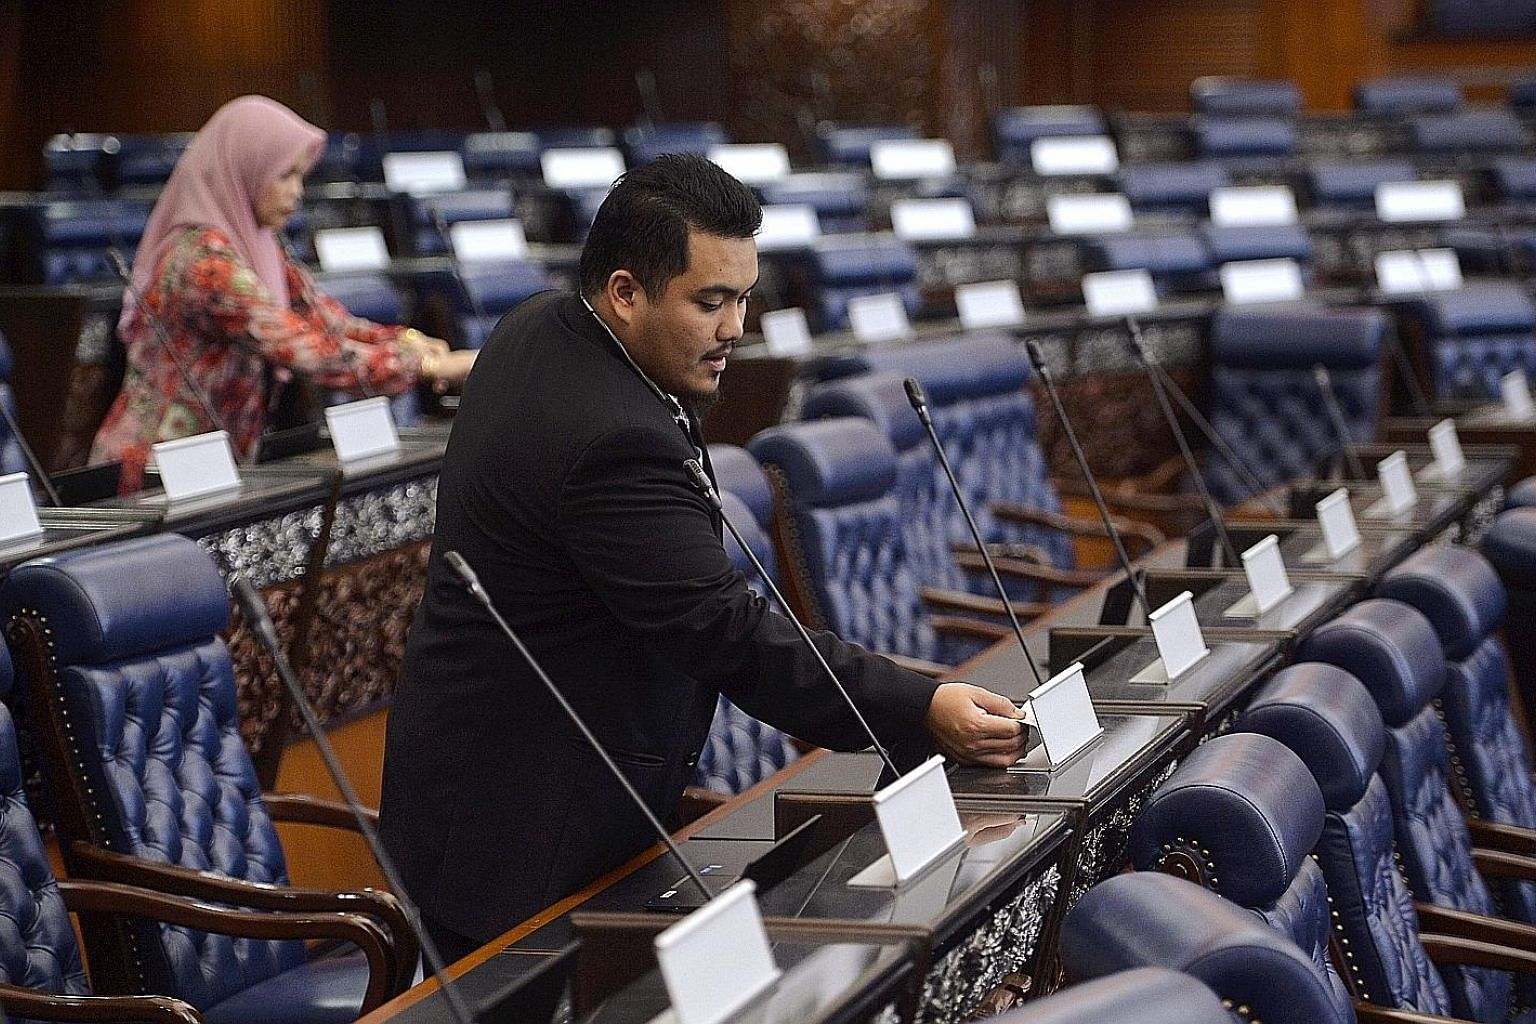 Staff preparing for Monday's Parliament session in Malaysia. Ninety of the 222 lawmakers who will take their oath are first-time MPs, the highest number since Parliament first convened in 1959. The 20-day sitting is expected to focus on rolling back